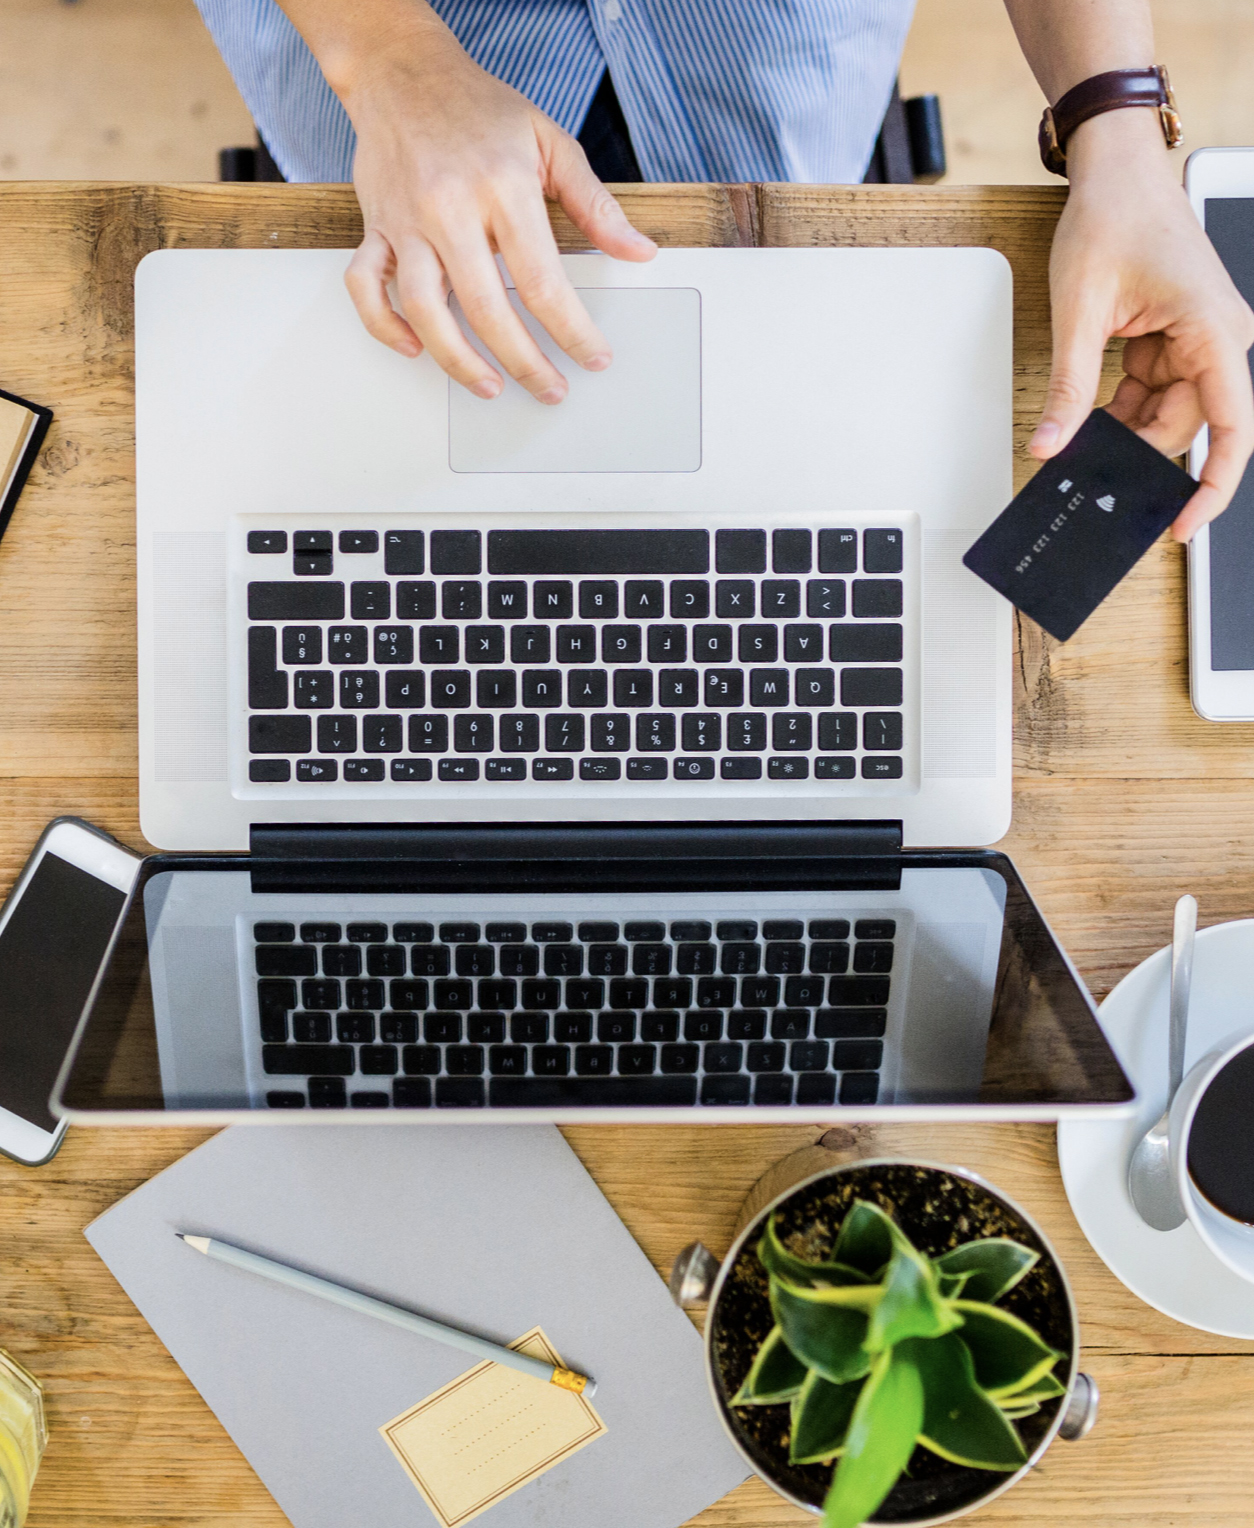 Digitally banking with a card